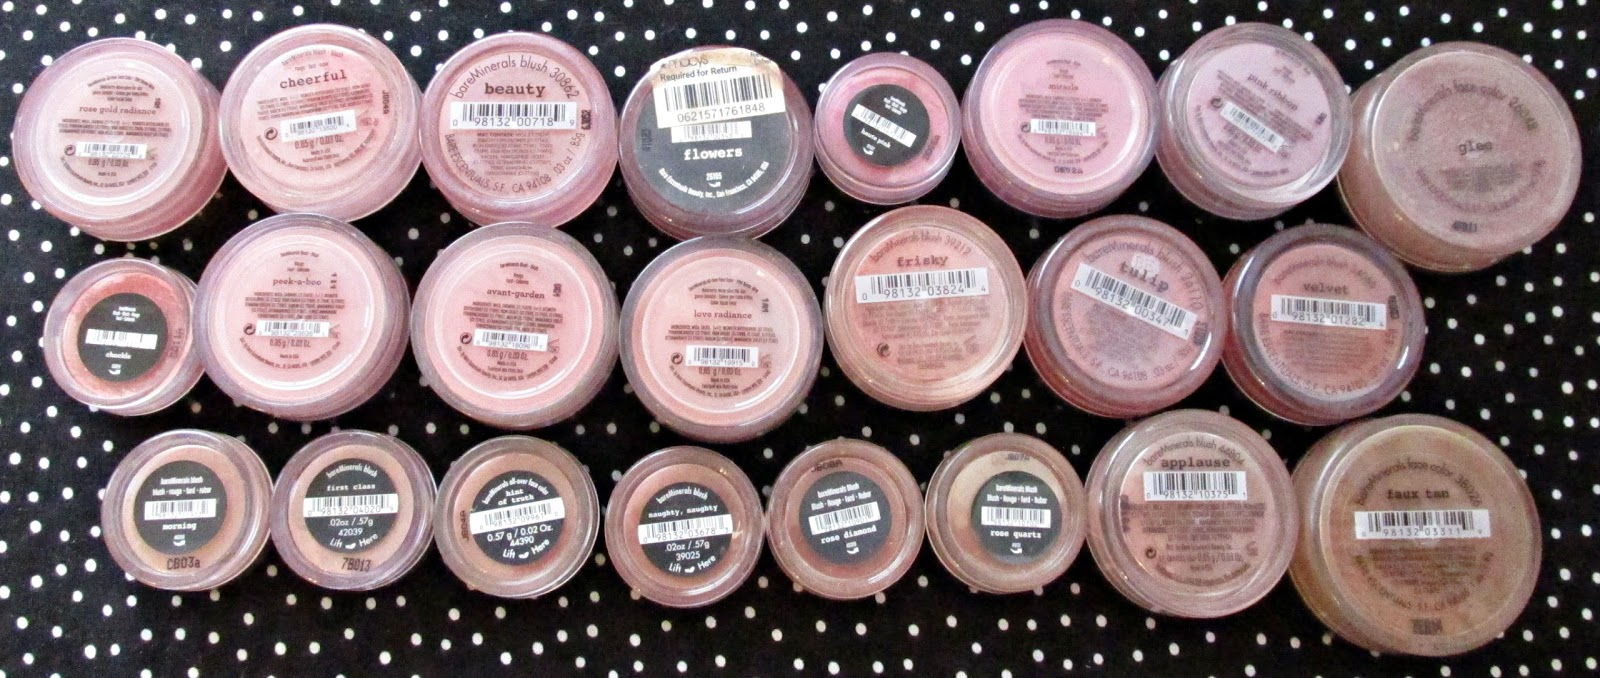 Sharalee's Box of Chocolates: Browse My Stash: bareMinerals Loose ...